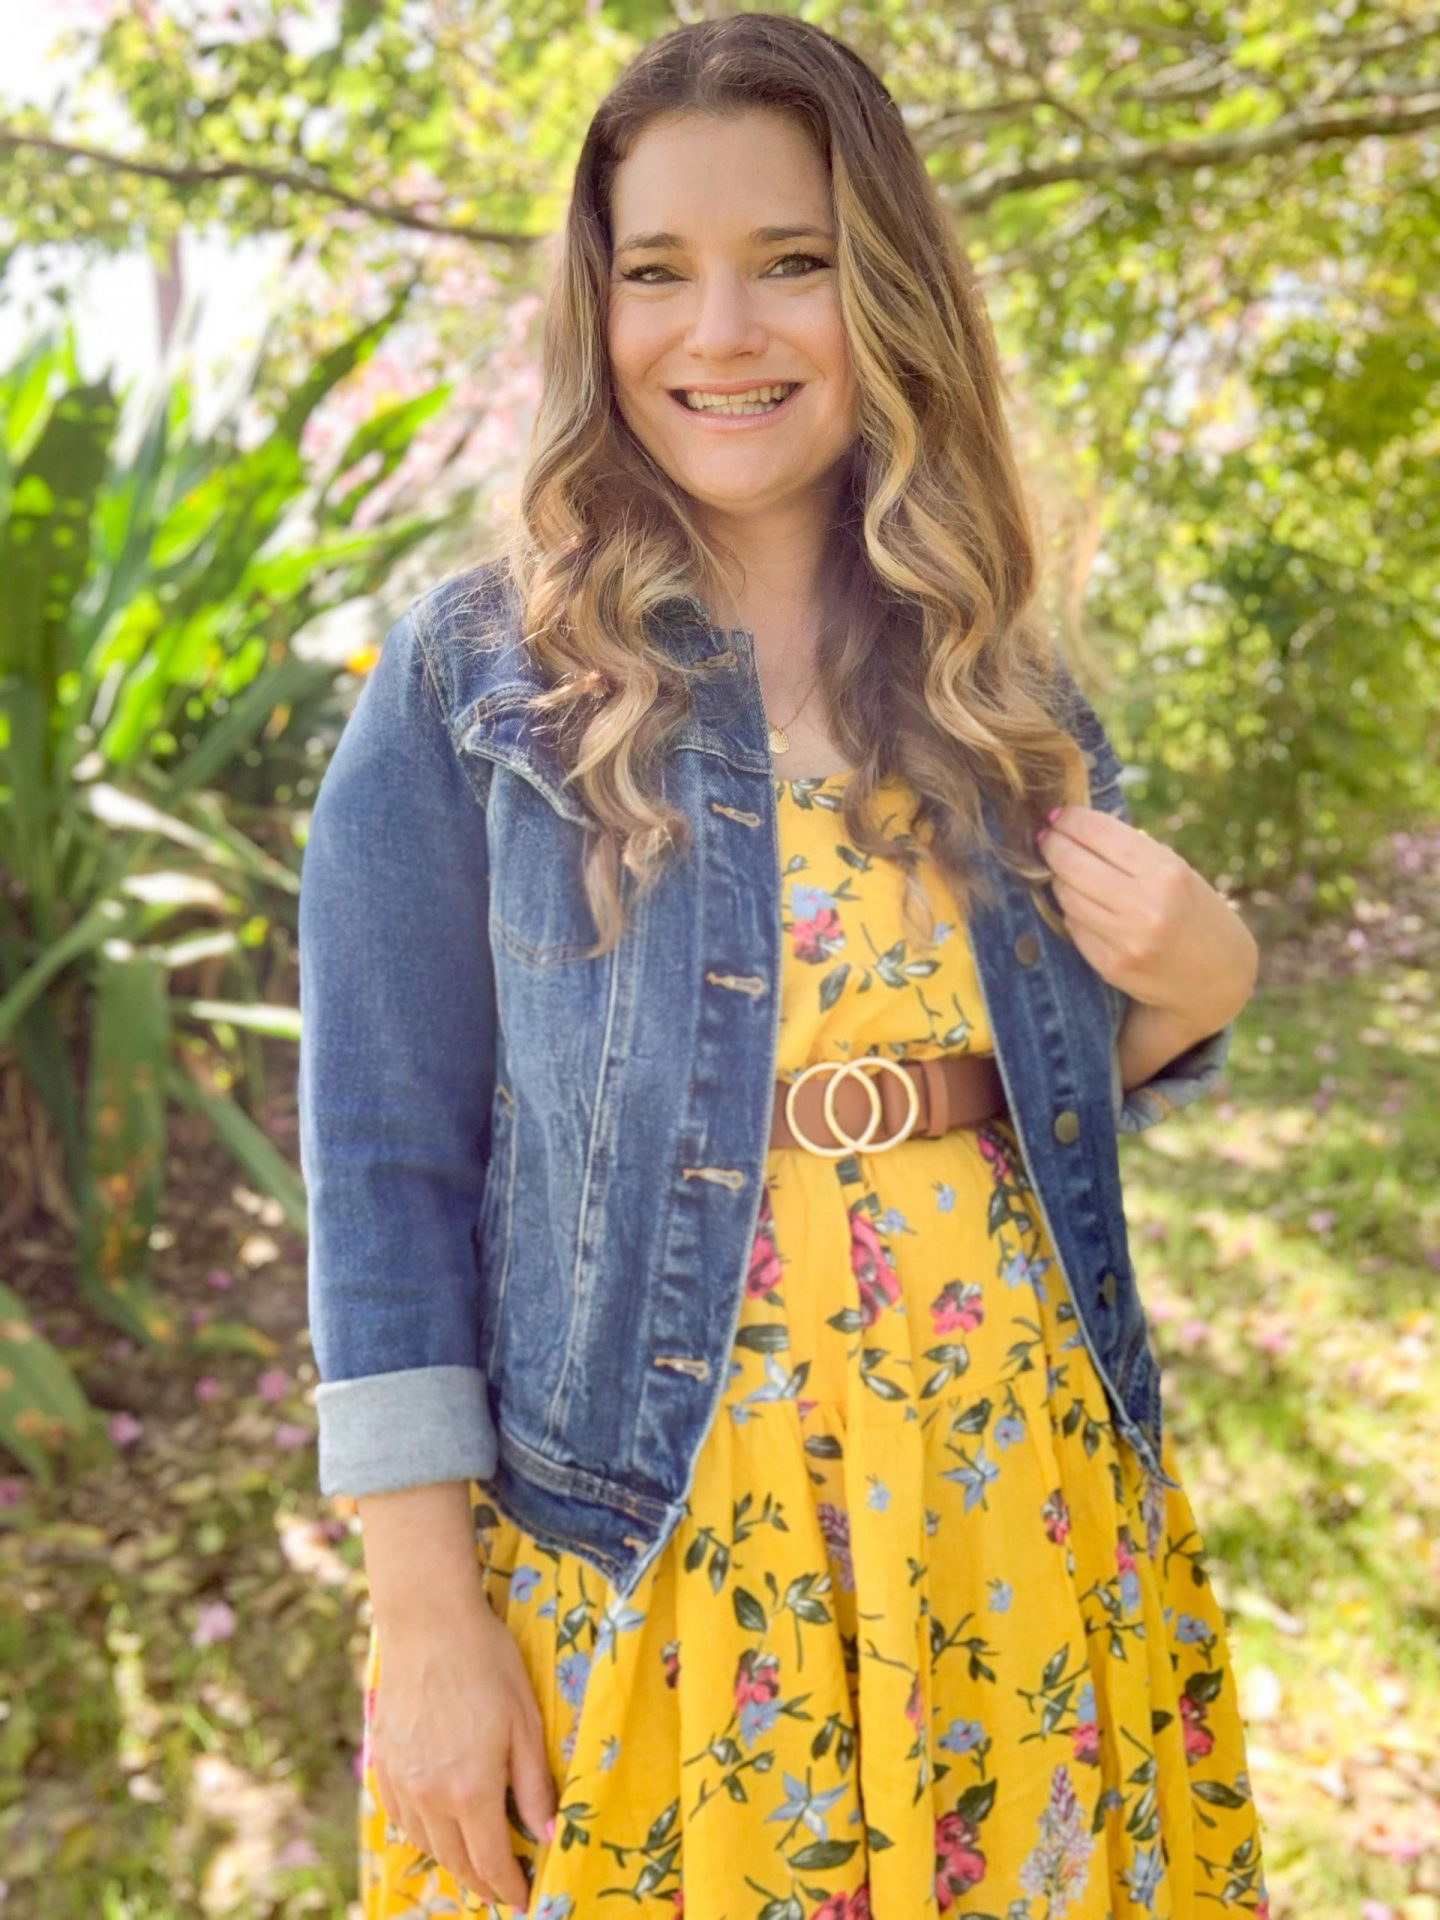 Voluminous maxi dresses are a HUGE Spring trend but can easily overwhelm petite bodies. Here's how to style a high volume floral maxi dress that will look great even on curvy girls. Other trends include statement belt, yellow